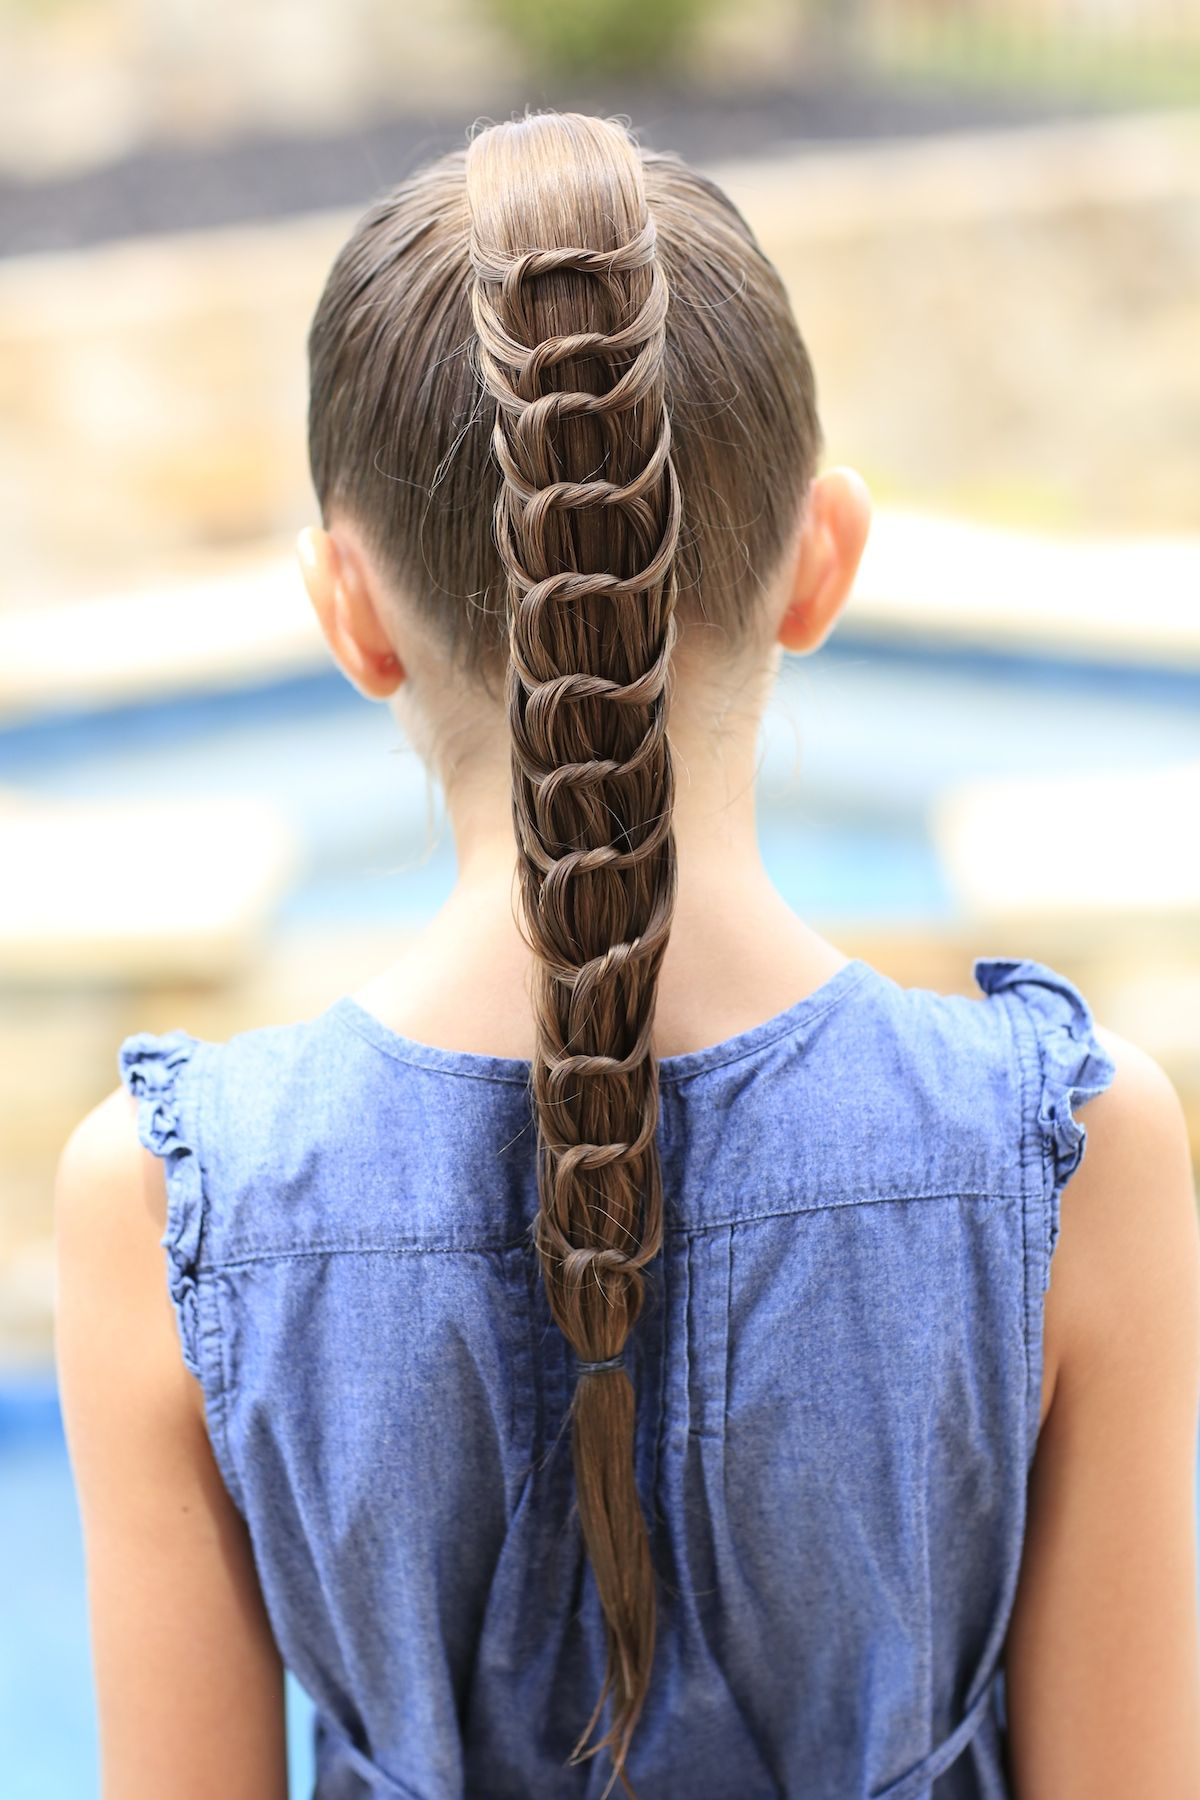 The knotted ponytail hairstyle so cute cutegirlshairstyles